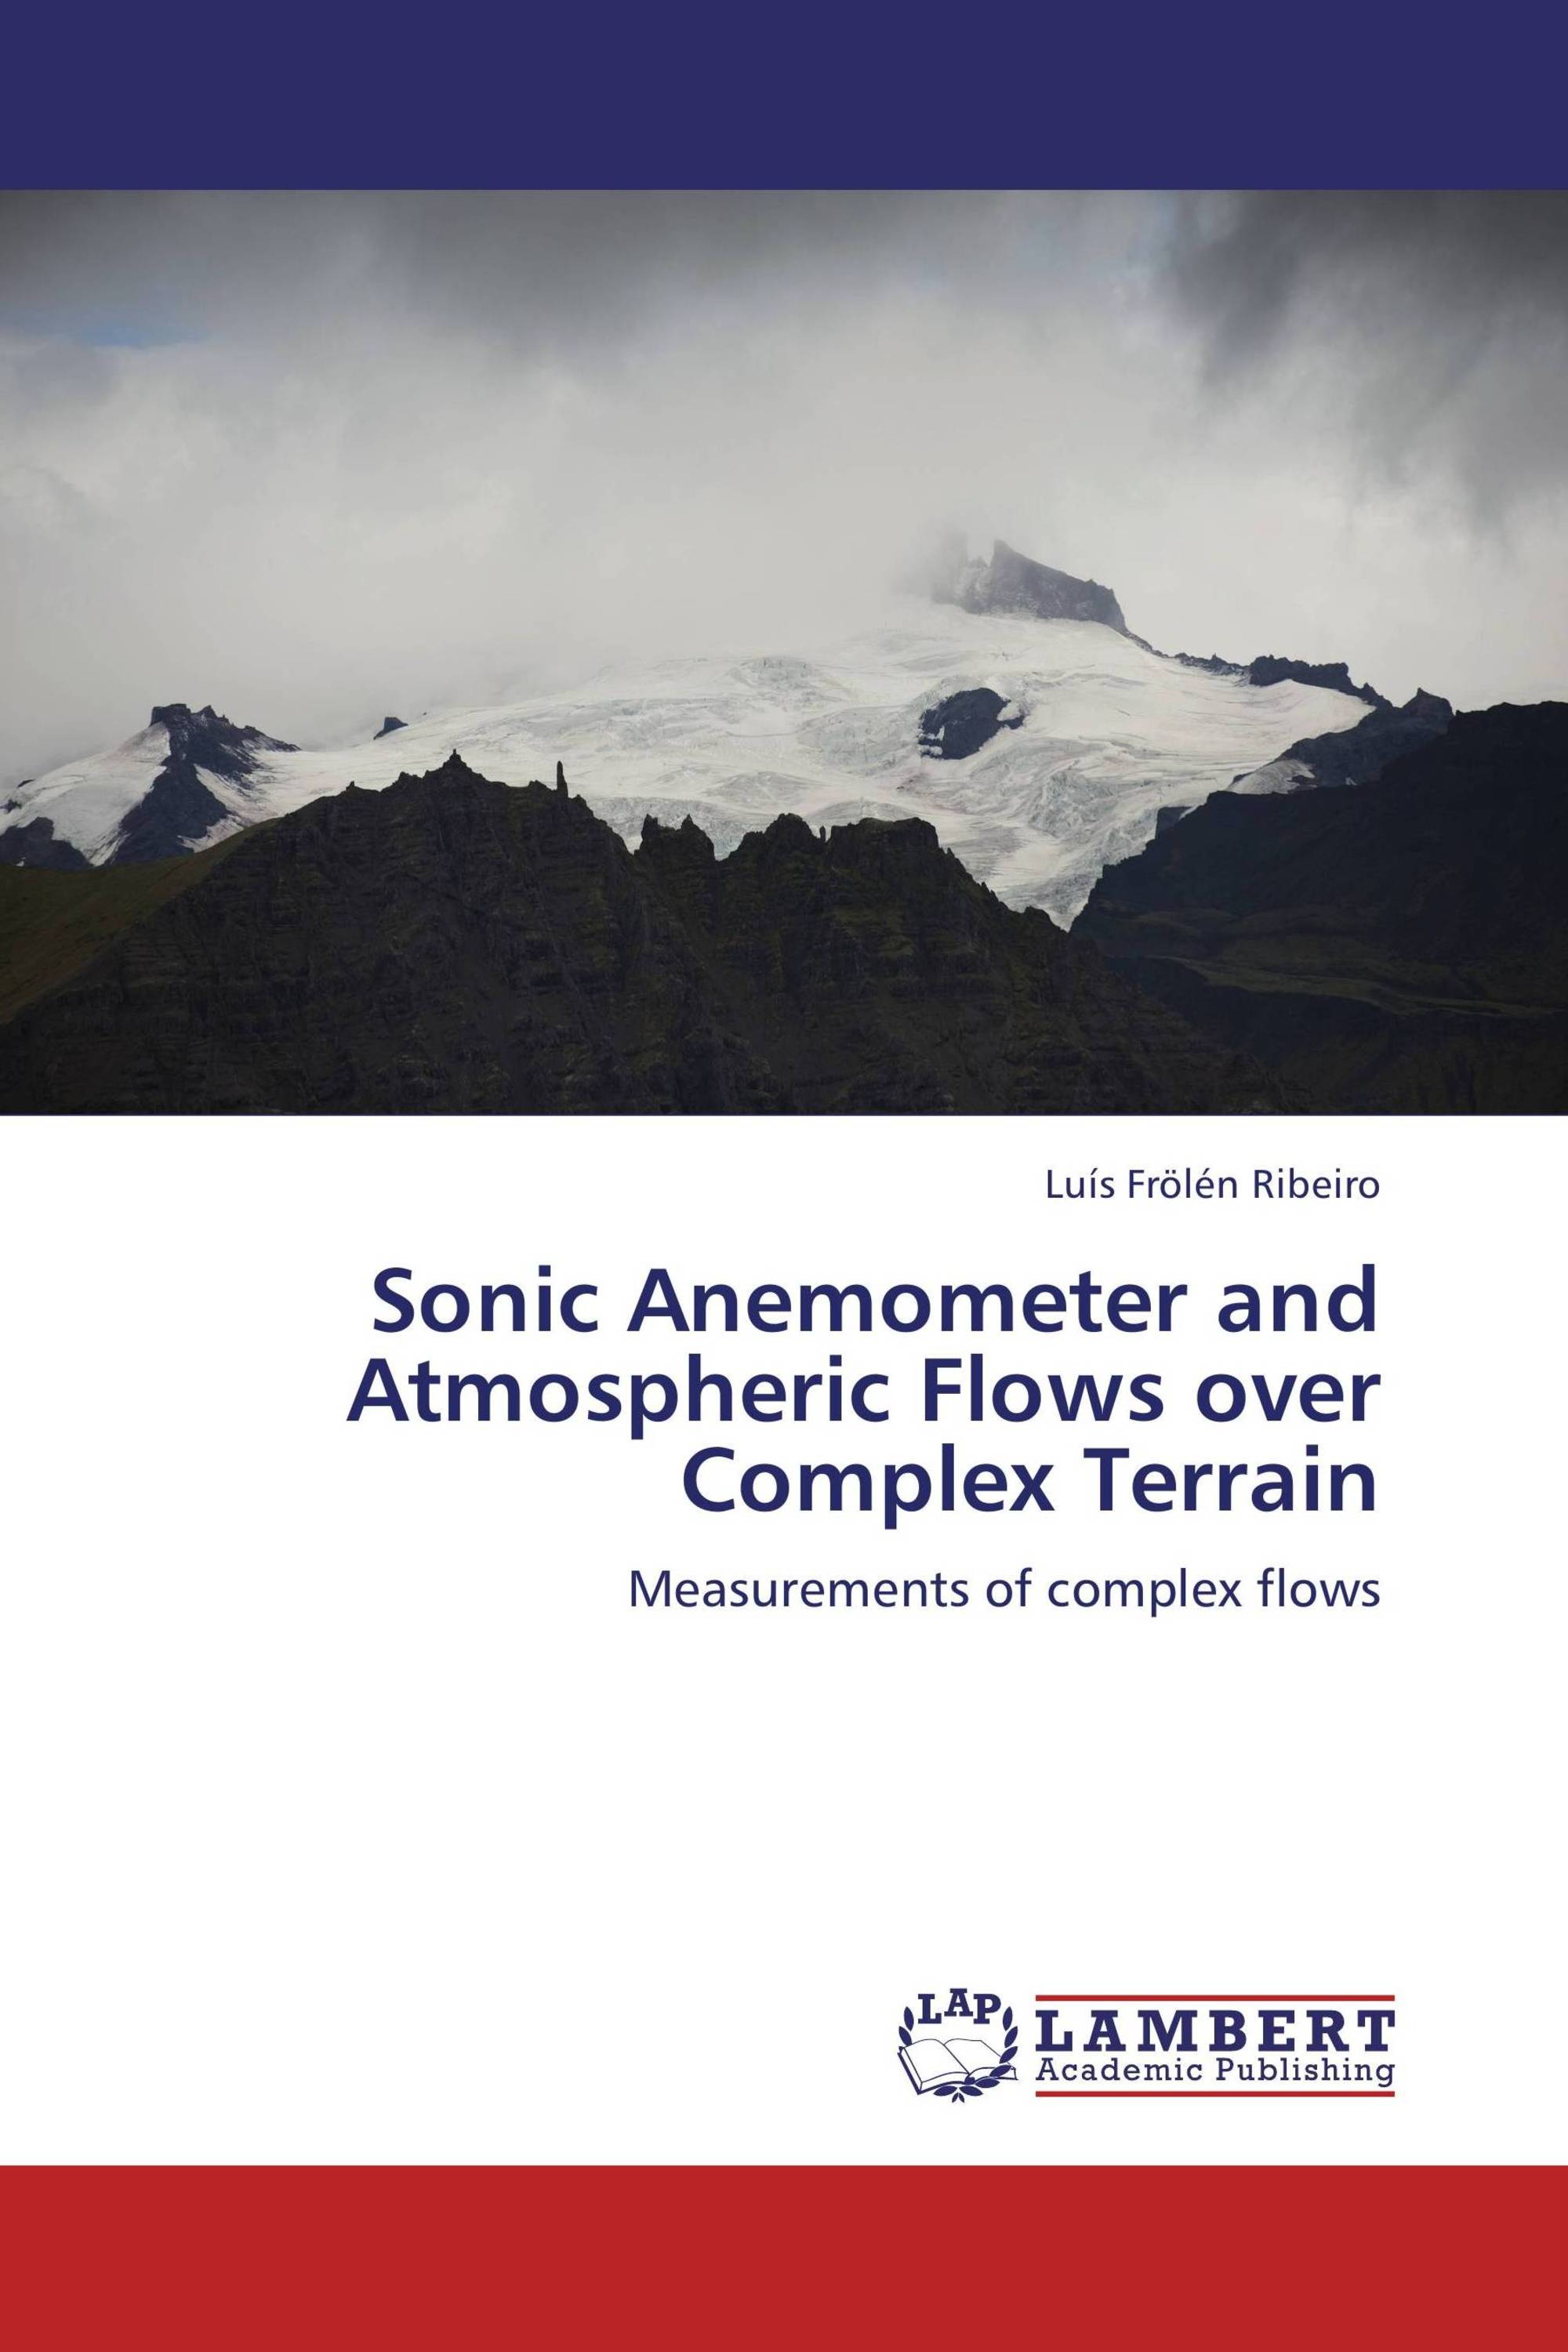 Sonic Anemometer and Atmospheric Flows over Complex Terrain